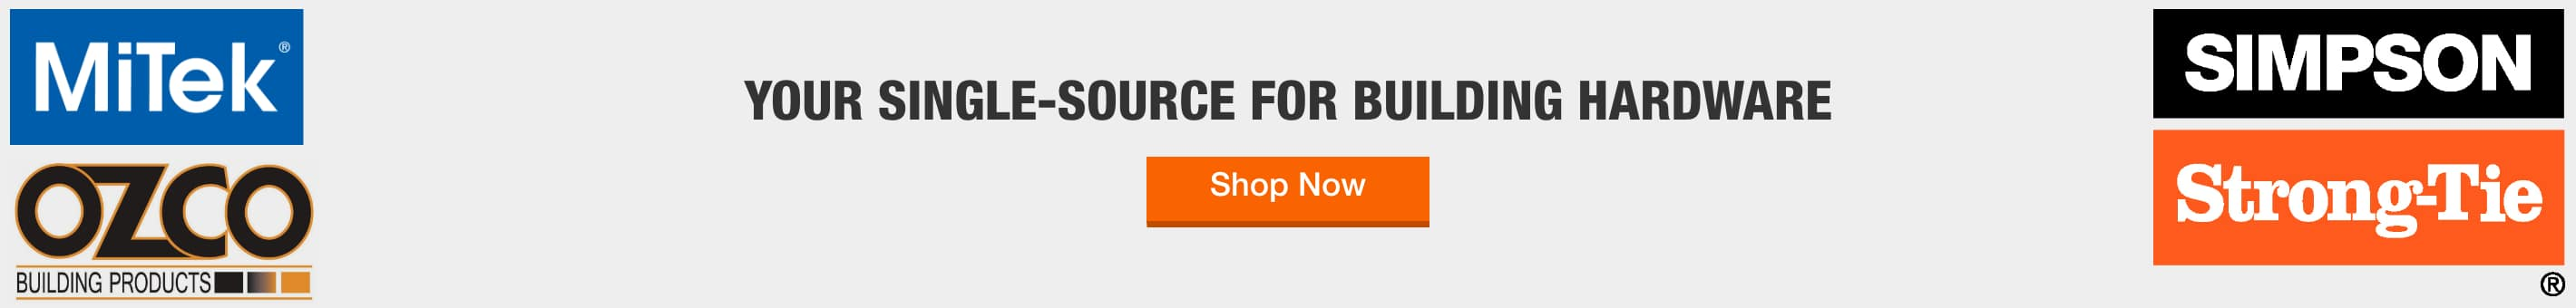 THE HOME DEPOT - YOUR SINGLE-SOURCE FOR BUILDING HARDWARE